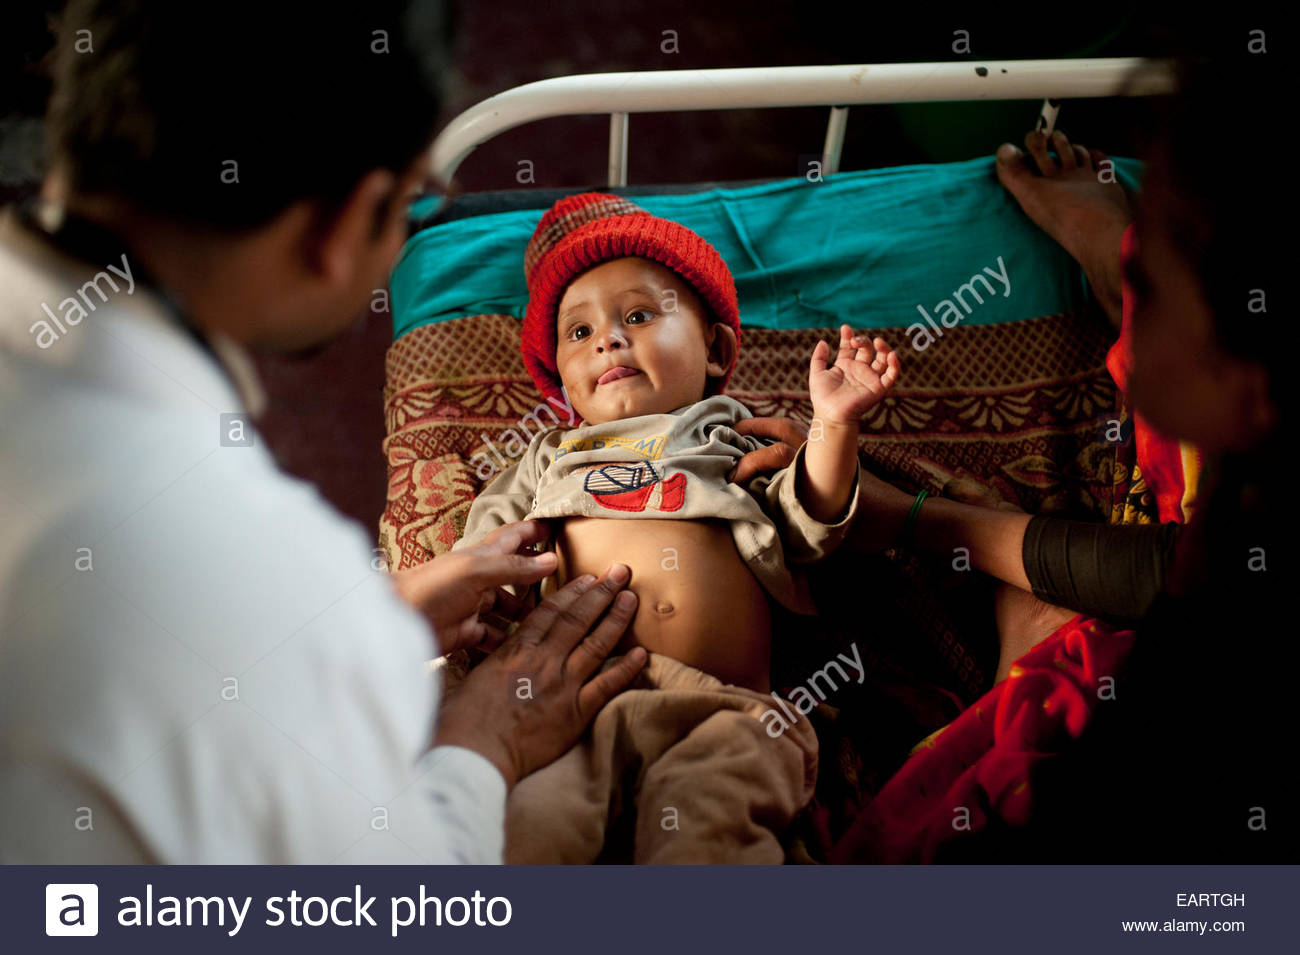 A doctor examines a small baby who is suffering from pneumonia. - Stock Image